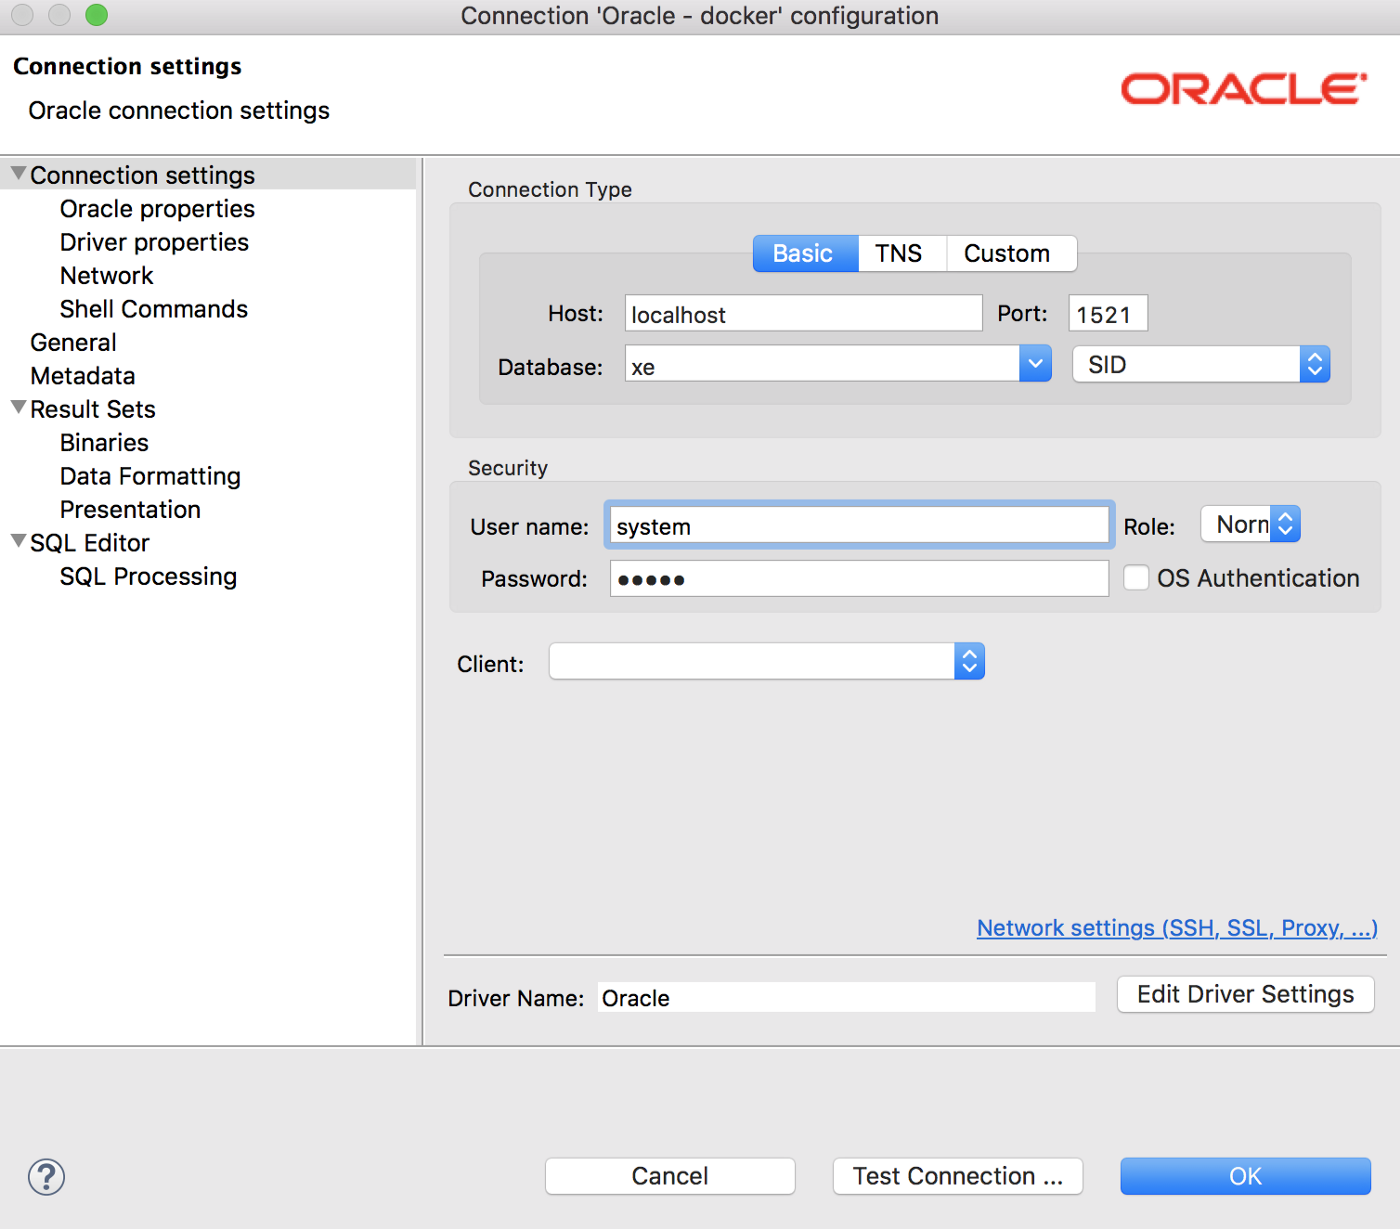 How to Install Oracle Database via Docker in Mac and Connect with